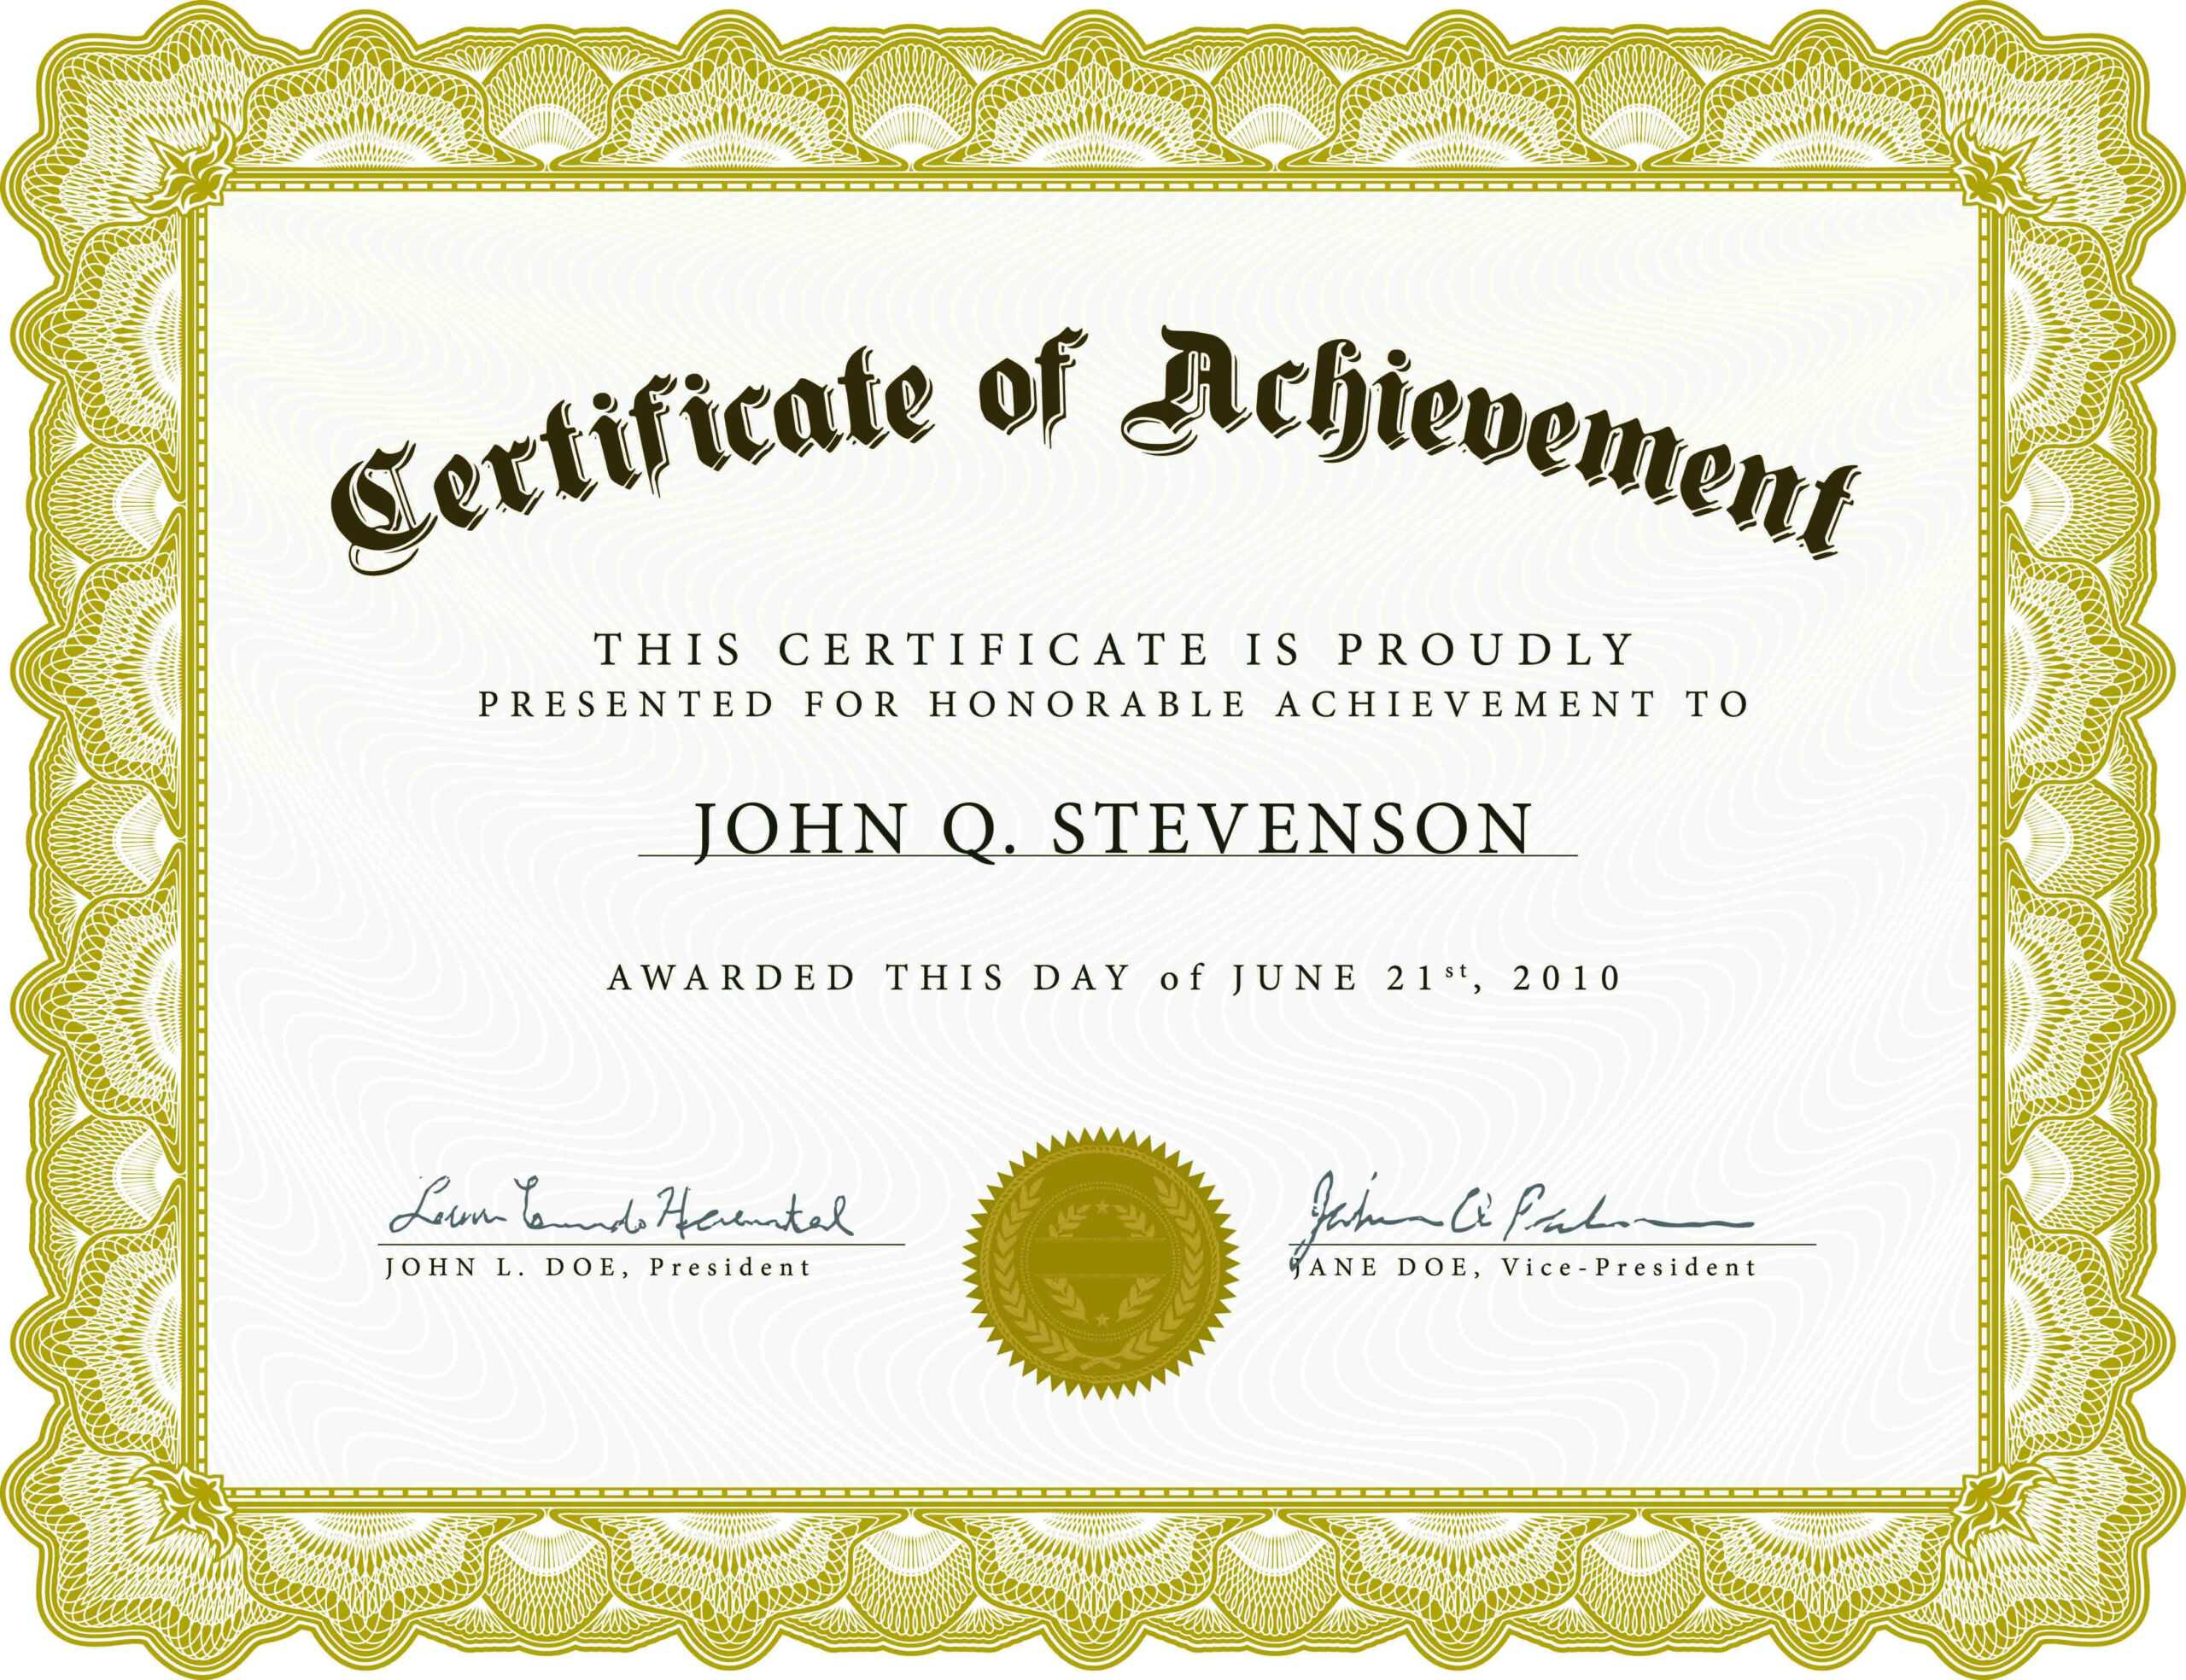 Free Funny Certificate Templates For Word - Atlantaauctionco With Regard To Free Funny Certificate Templates For Word